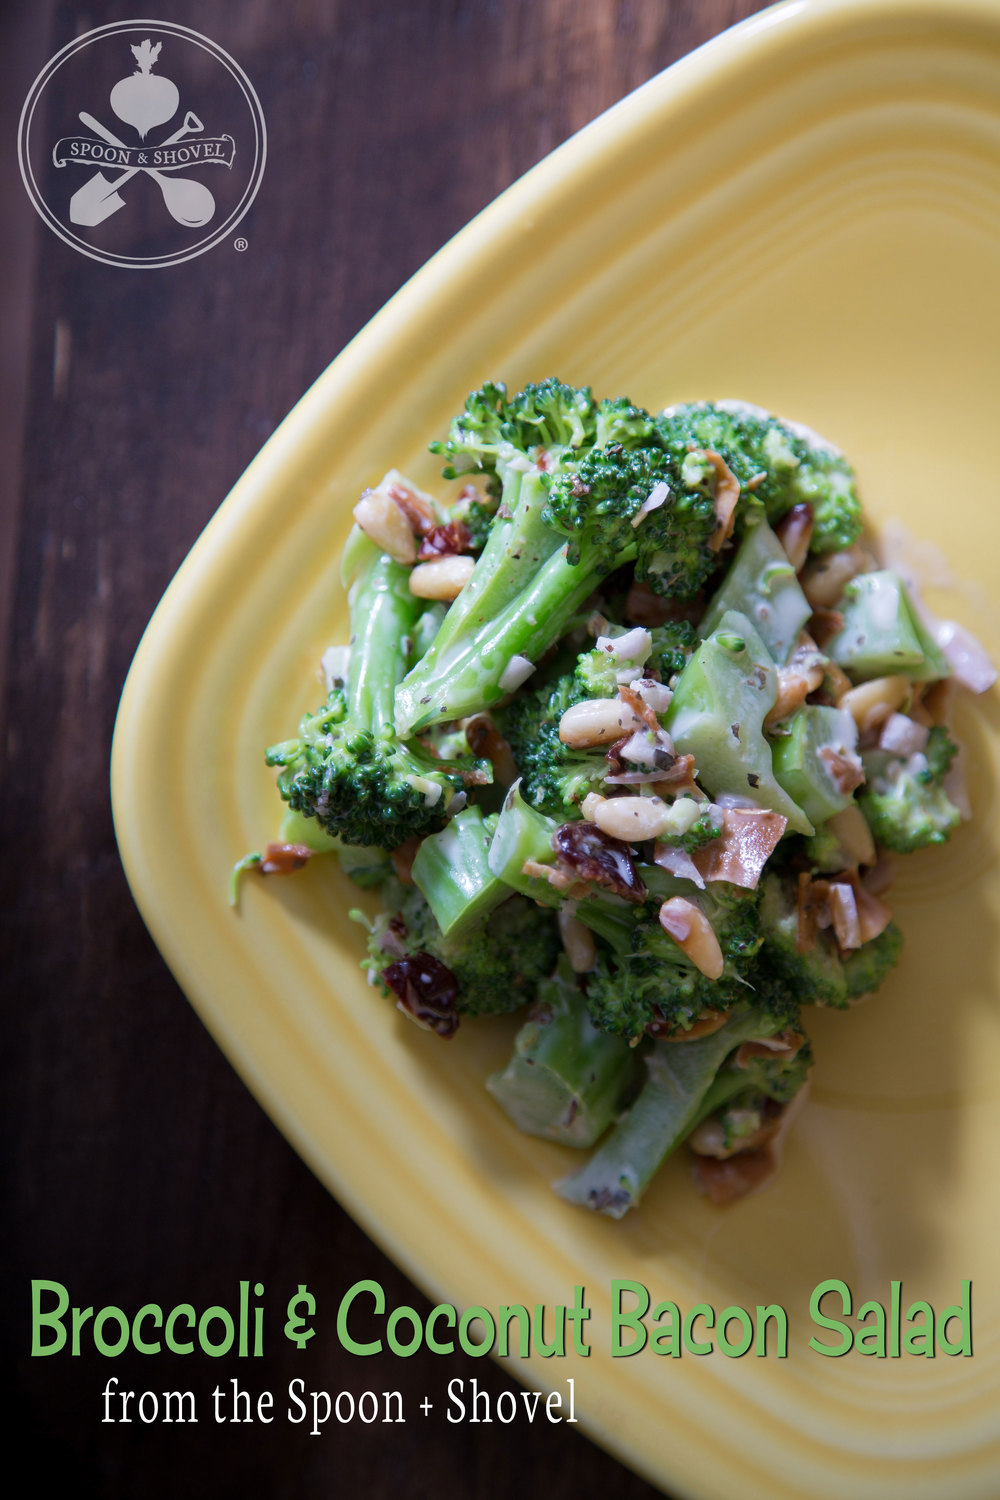 Broccoli and coconut bacon salad from The Spoon + Shovel